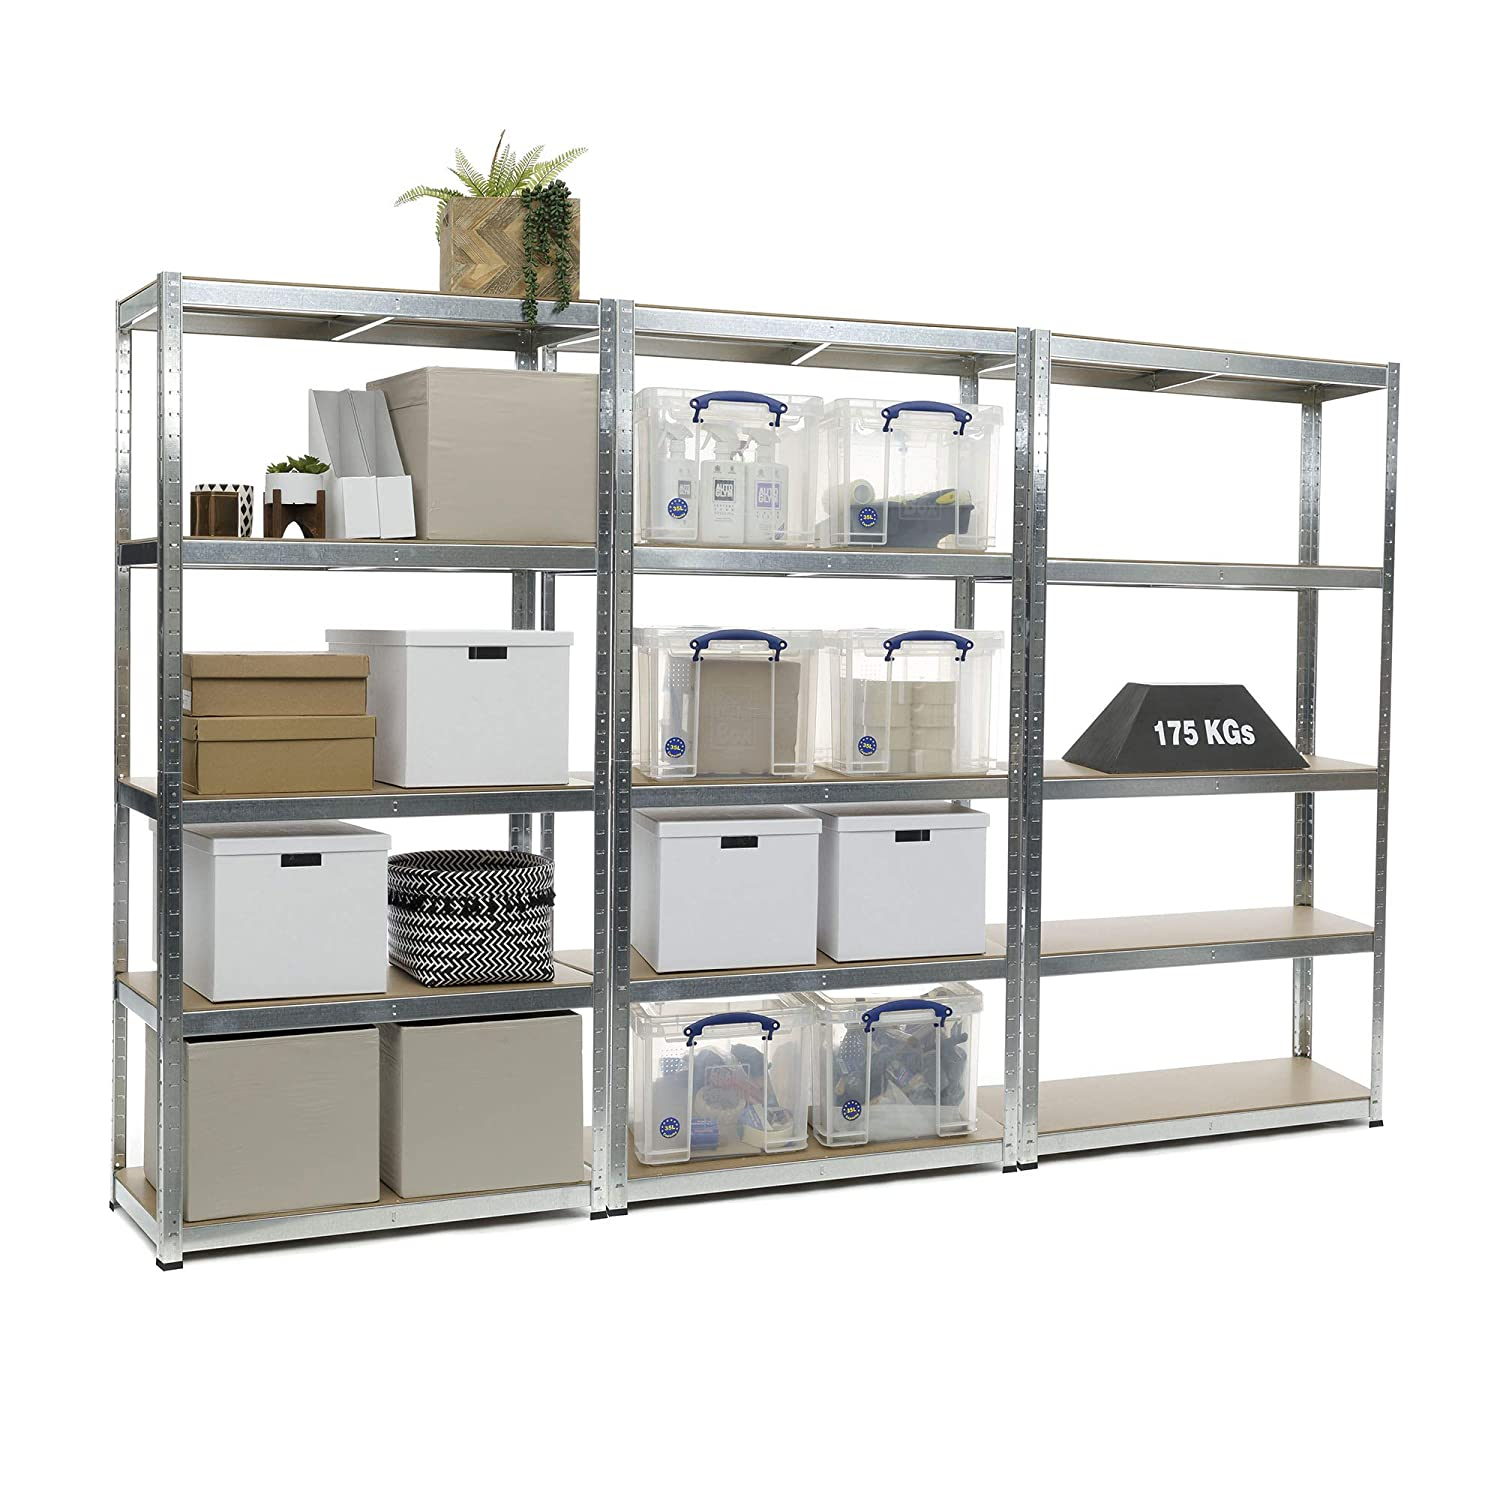 3 Bay Heavy Duty Galvanised Shelving Garage Racking Unit 175kg per shelf (5 Levels 1800mm H x 900mm W x 400mm D)+ FREE NEXT DAY DELIVERY Racking Solutions